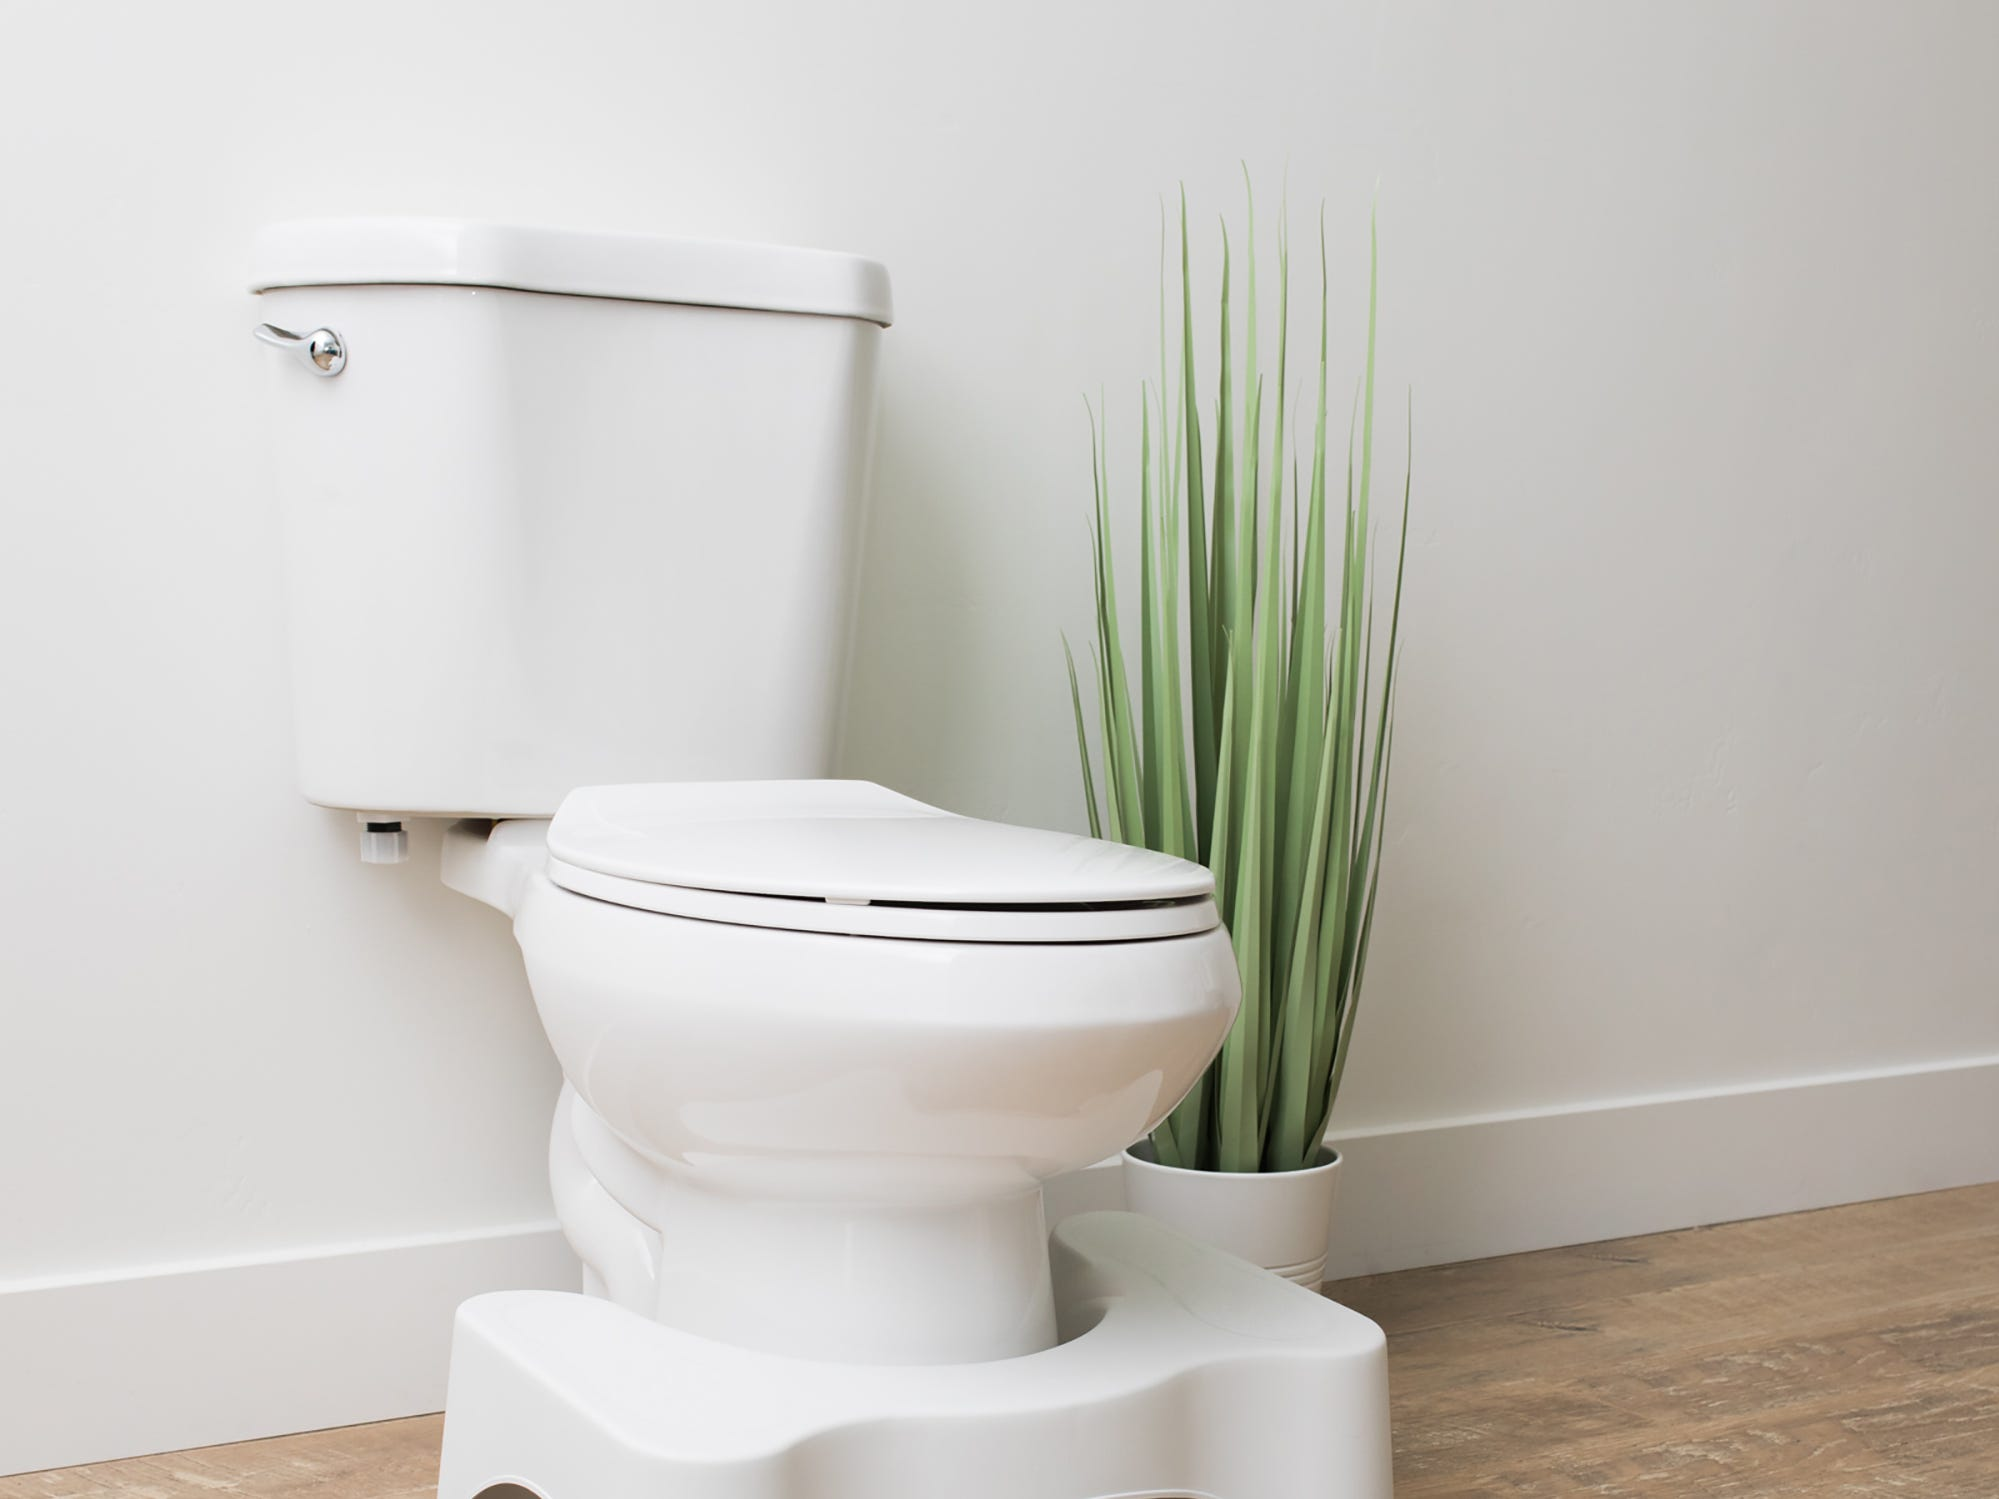 3. Squatty Potty What it is: Foot rest for toilet Pitched on: 11/14/14 Shark: Lori Greiner Offer/stake: $350,000/10% Sales: $140 million